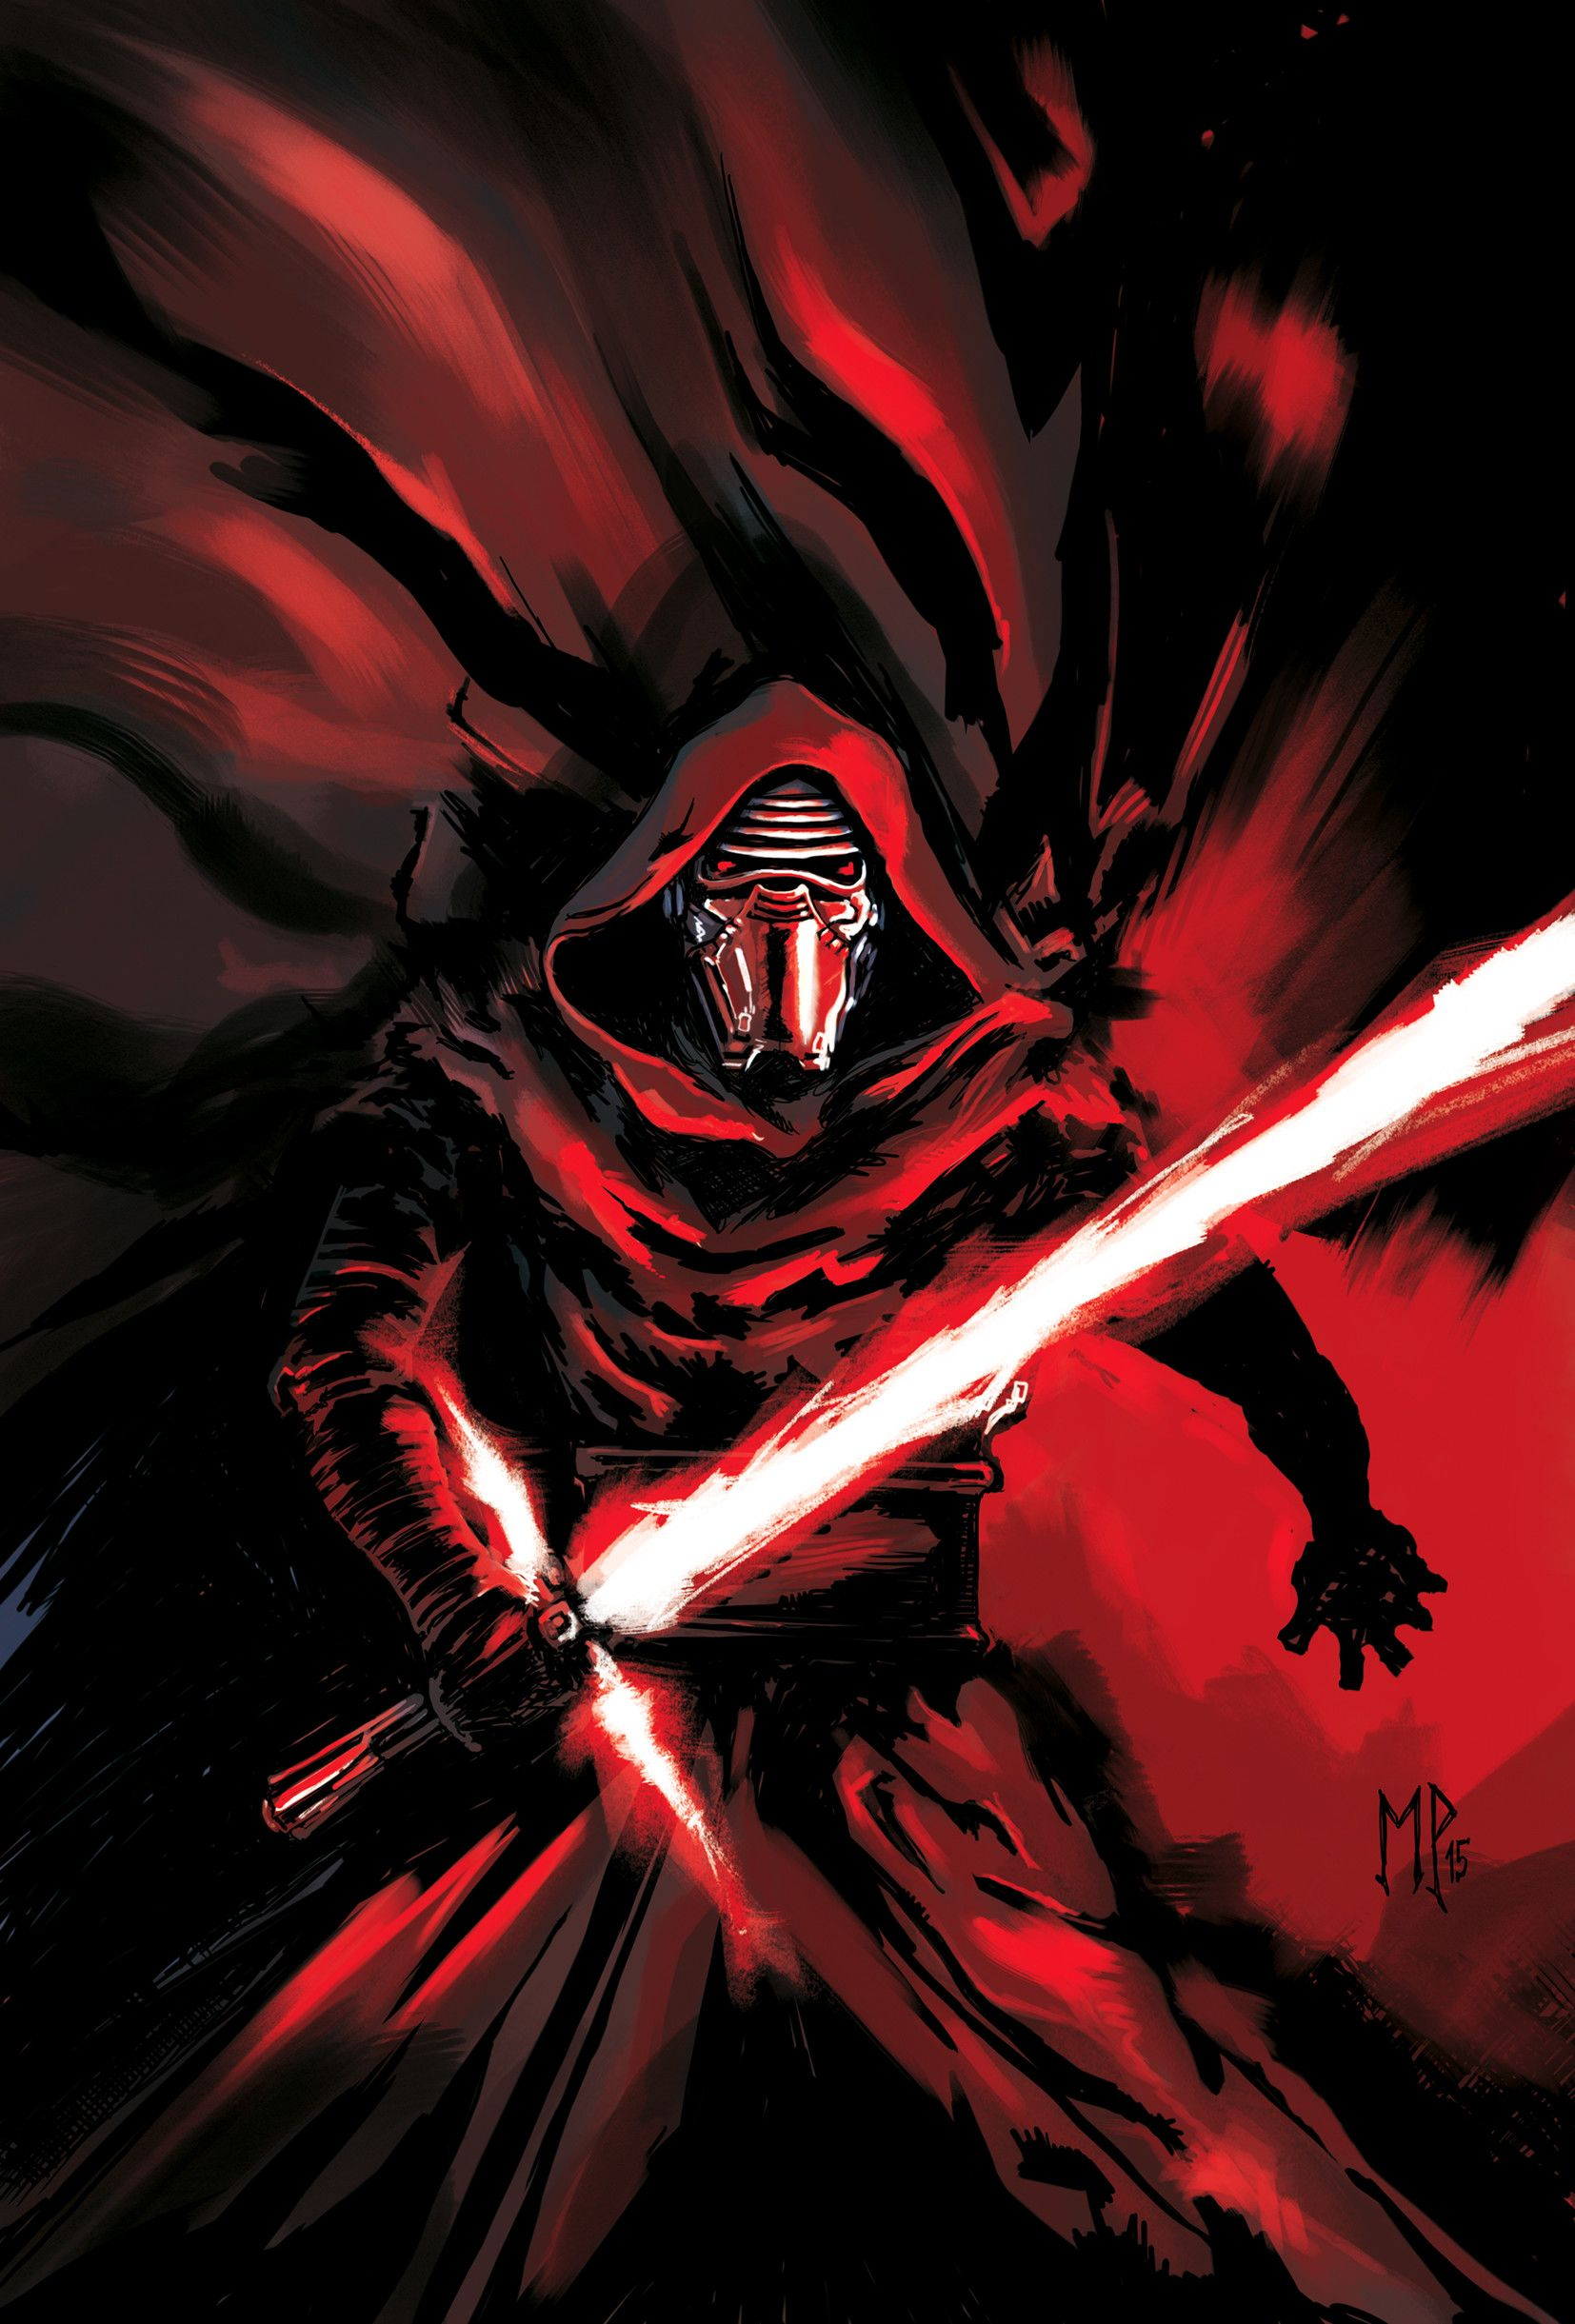 Kylo Ren Wallpaper 1920x1080 72 Images Star Wars Kunst Star